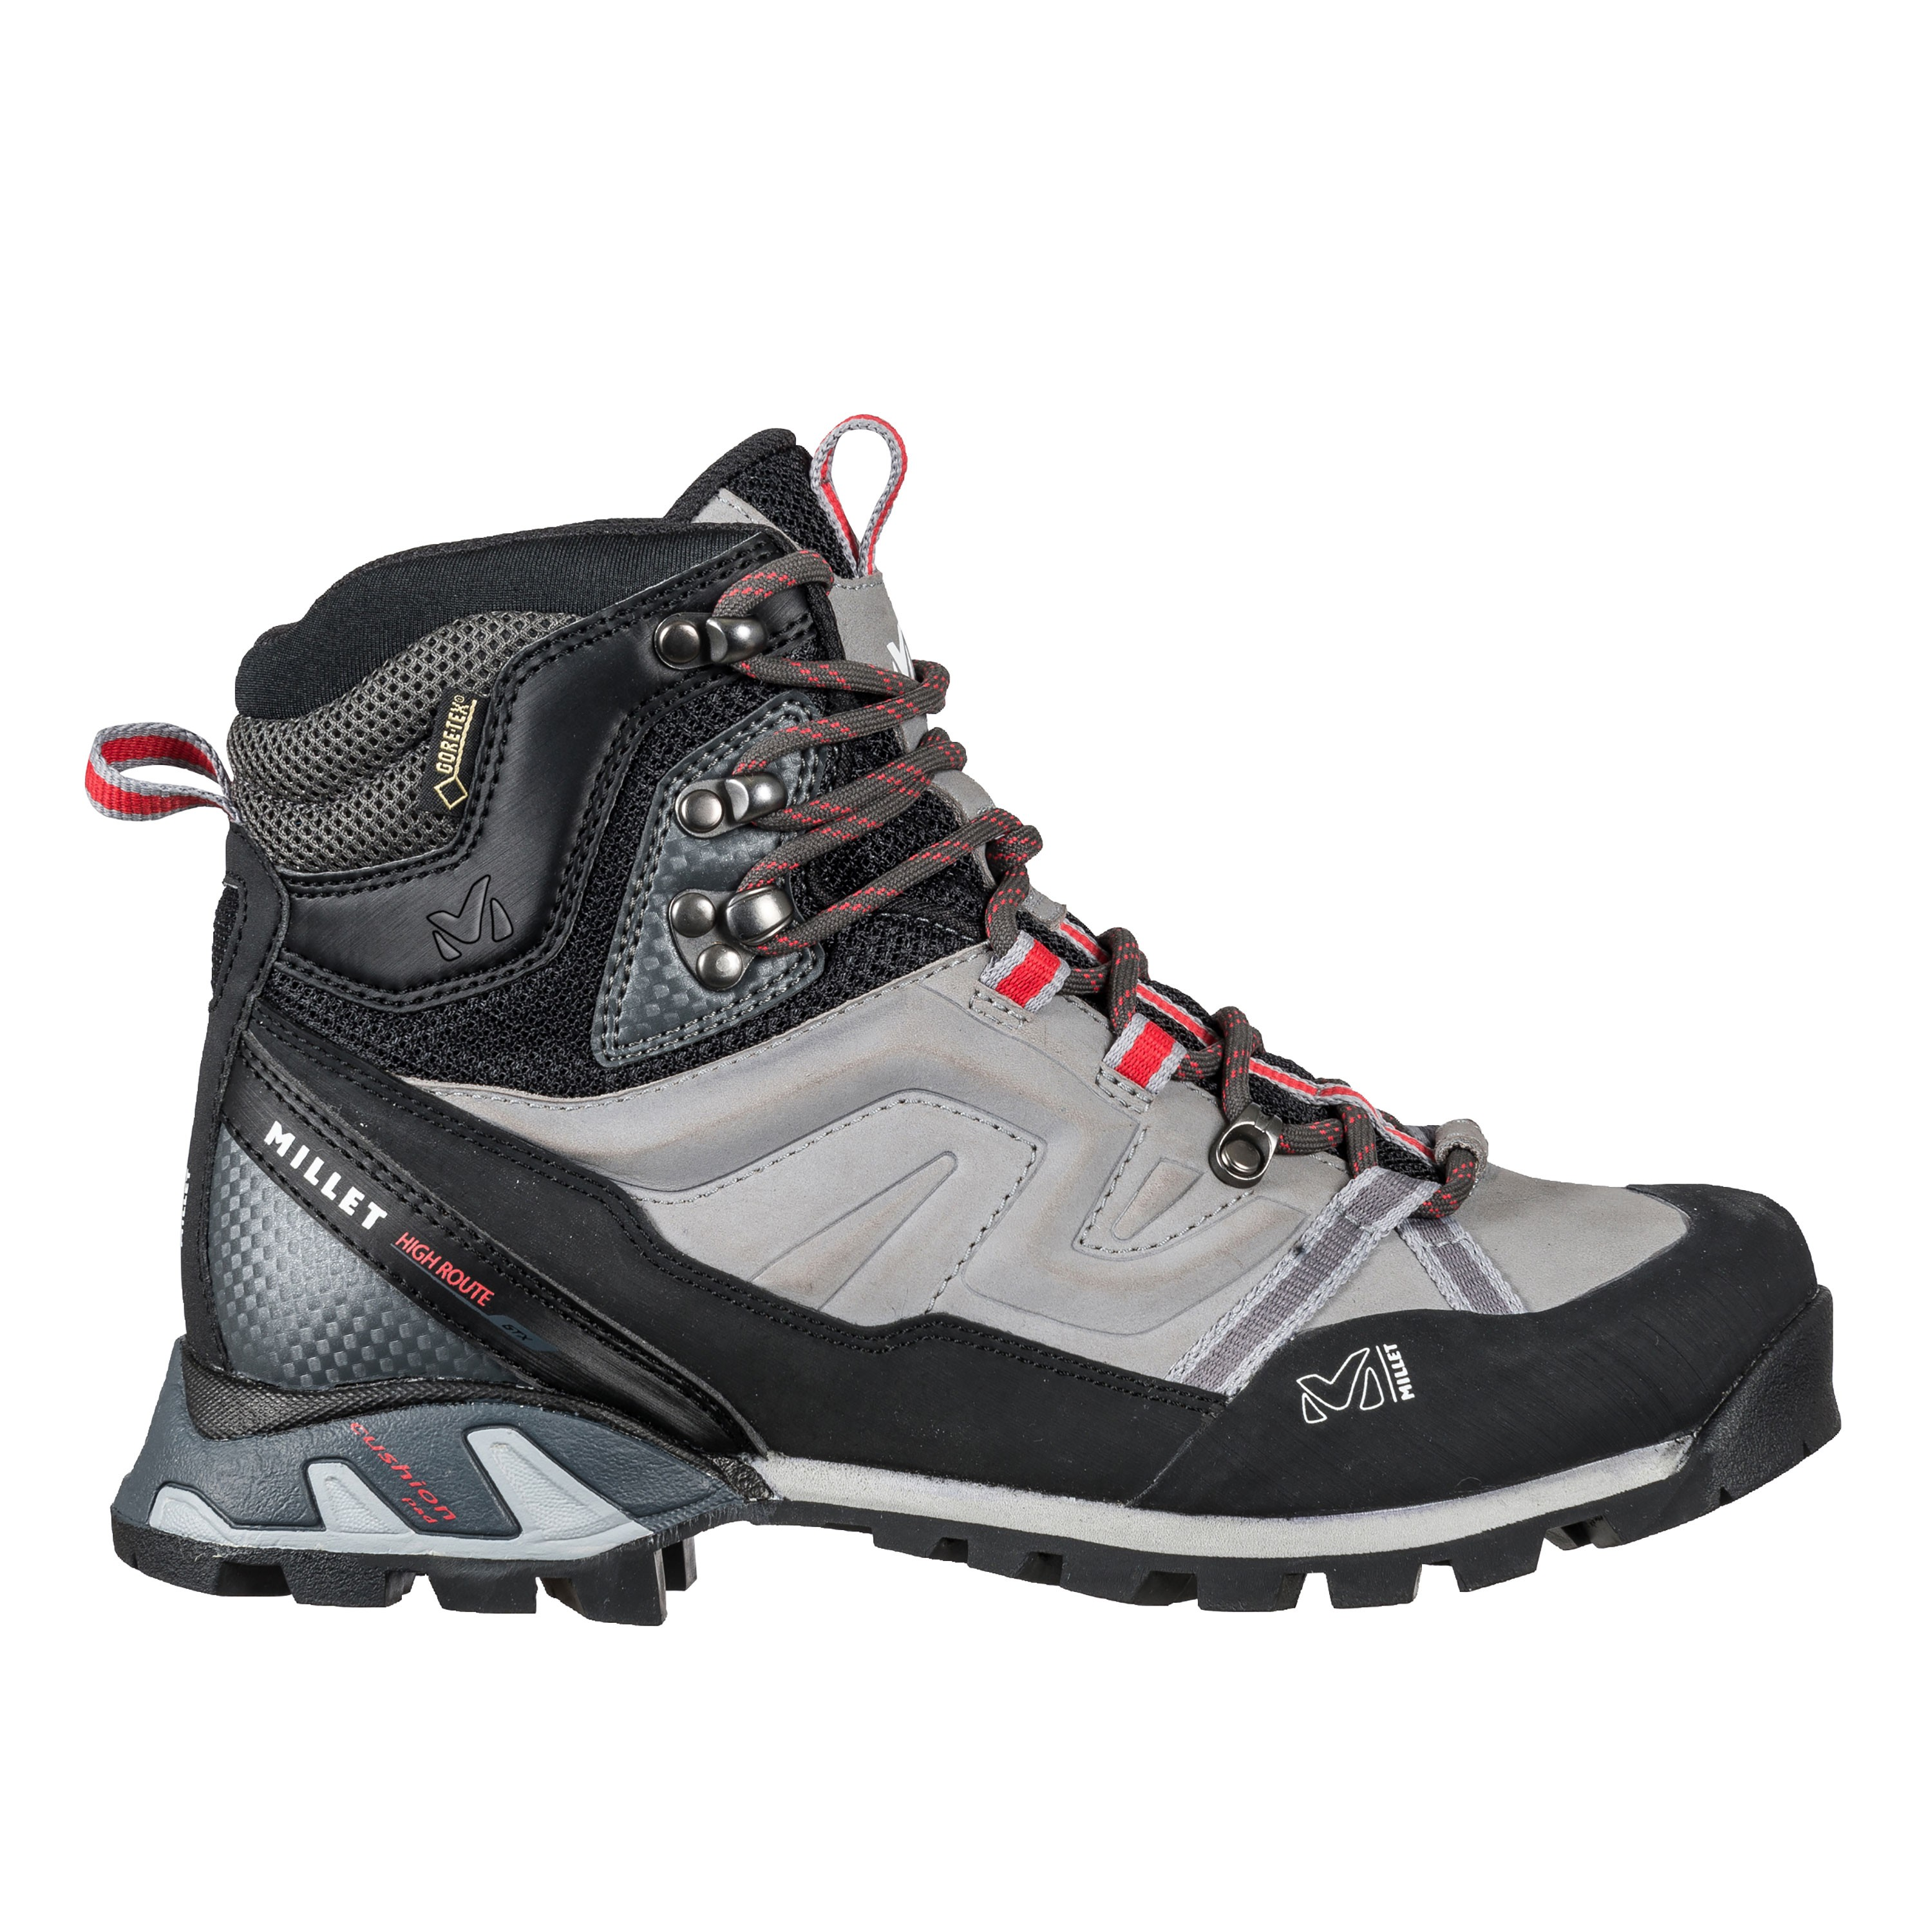 Montagne Chaussures Kayland Kayland Chaussures Montagne Chaussures PikXZOu